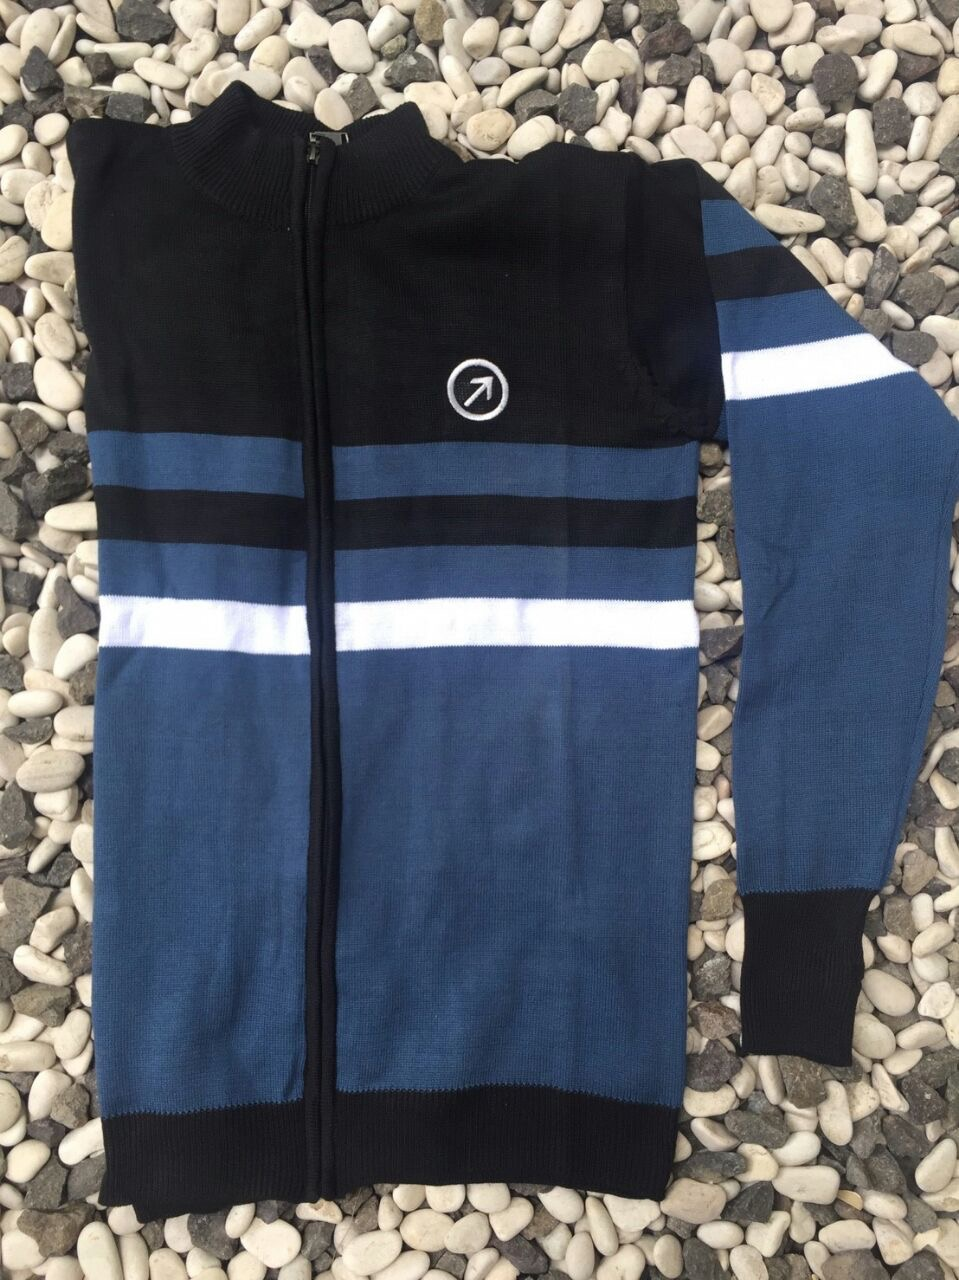 Jaket Sweater Black Blue